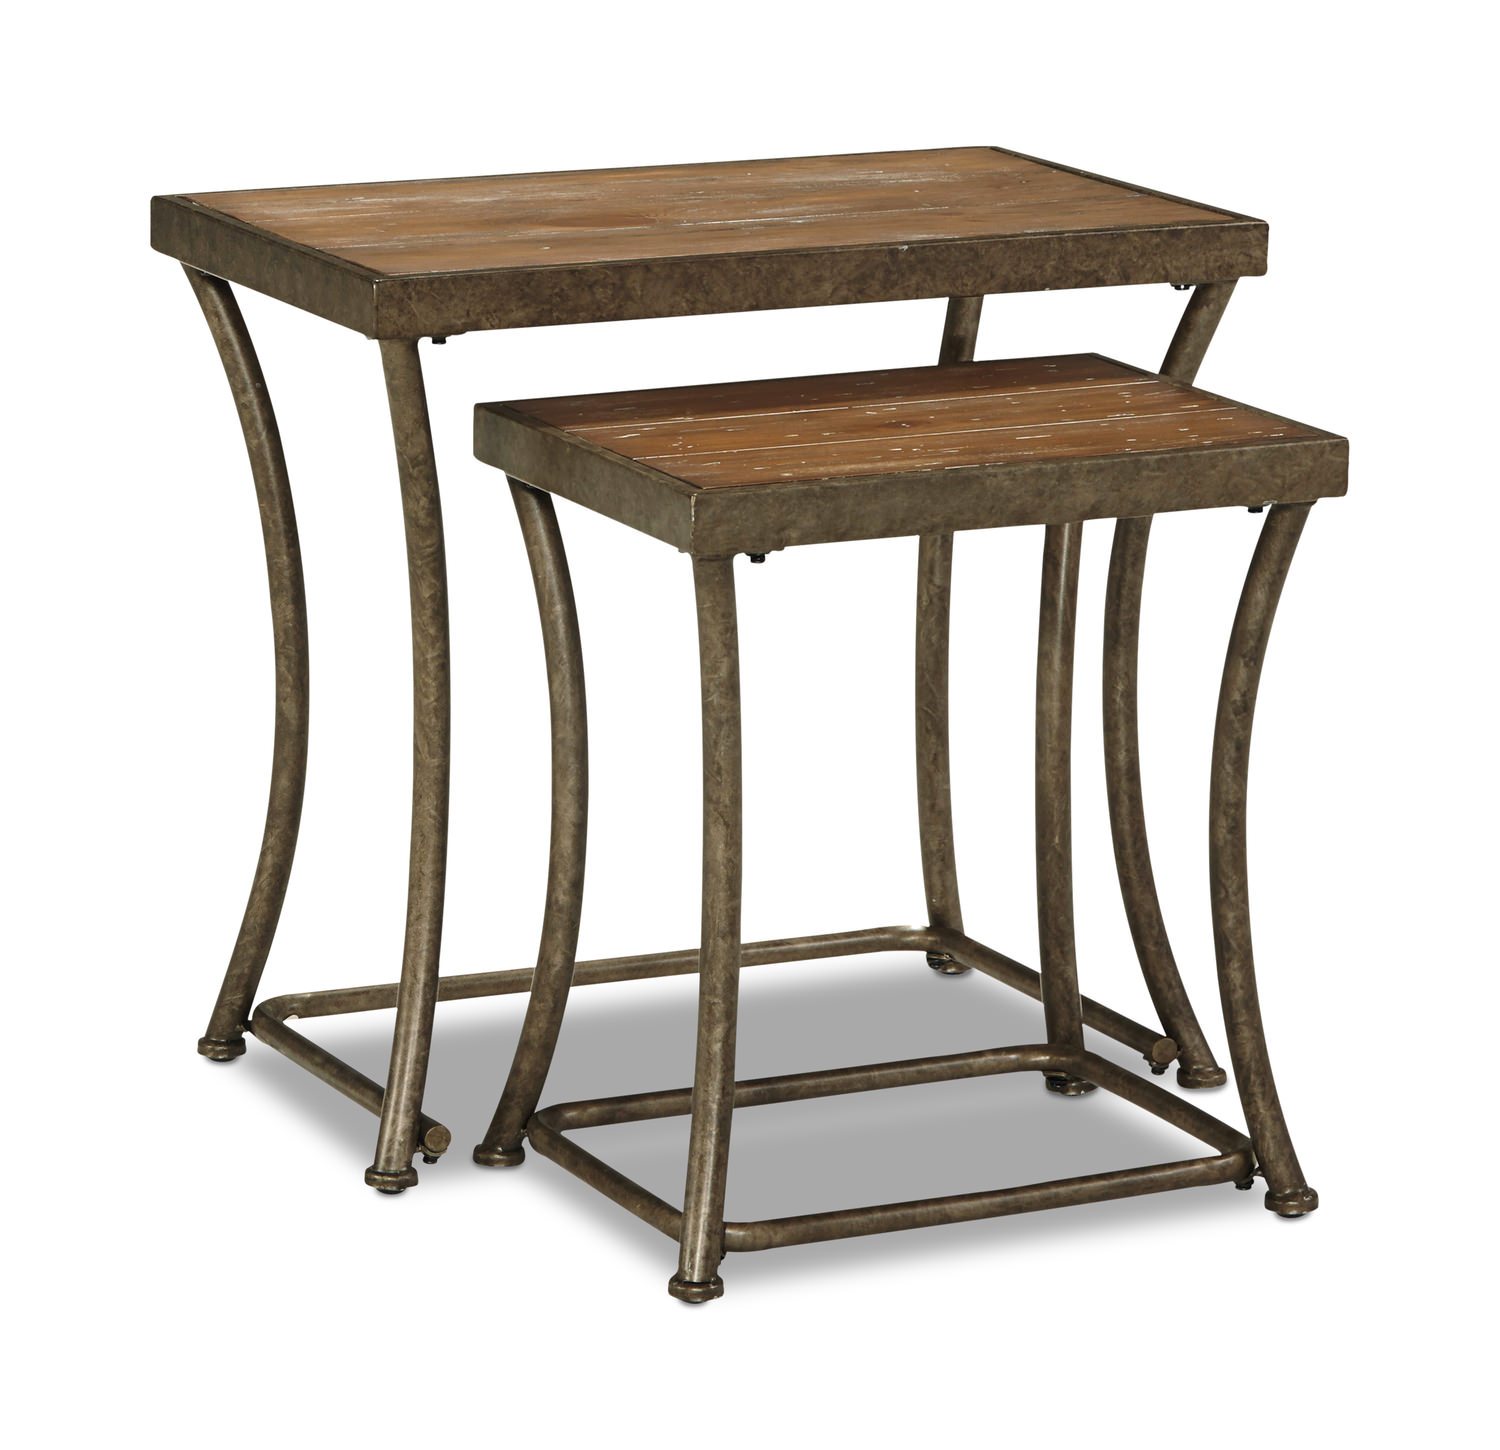 bassey nesting accent table bronze nartina end tables hom furniture knurl narrow glass door designs for rooms small console with storage round coffee stools drum tall traditional